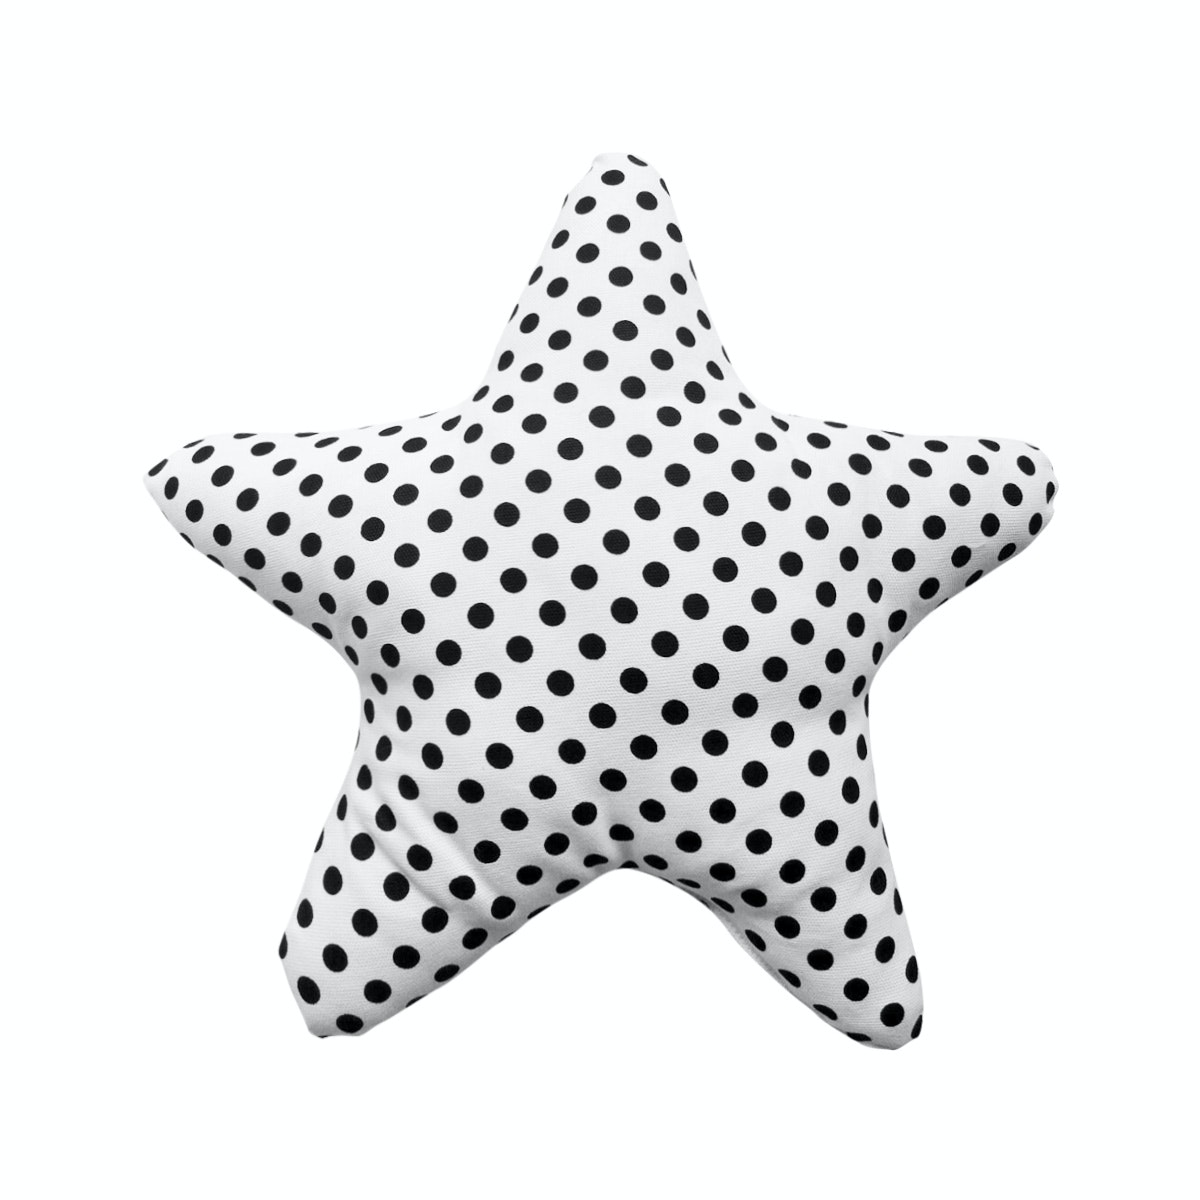 Stiletto In Style Bantal Hias / Star Pillow - Dalmatian